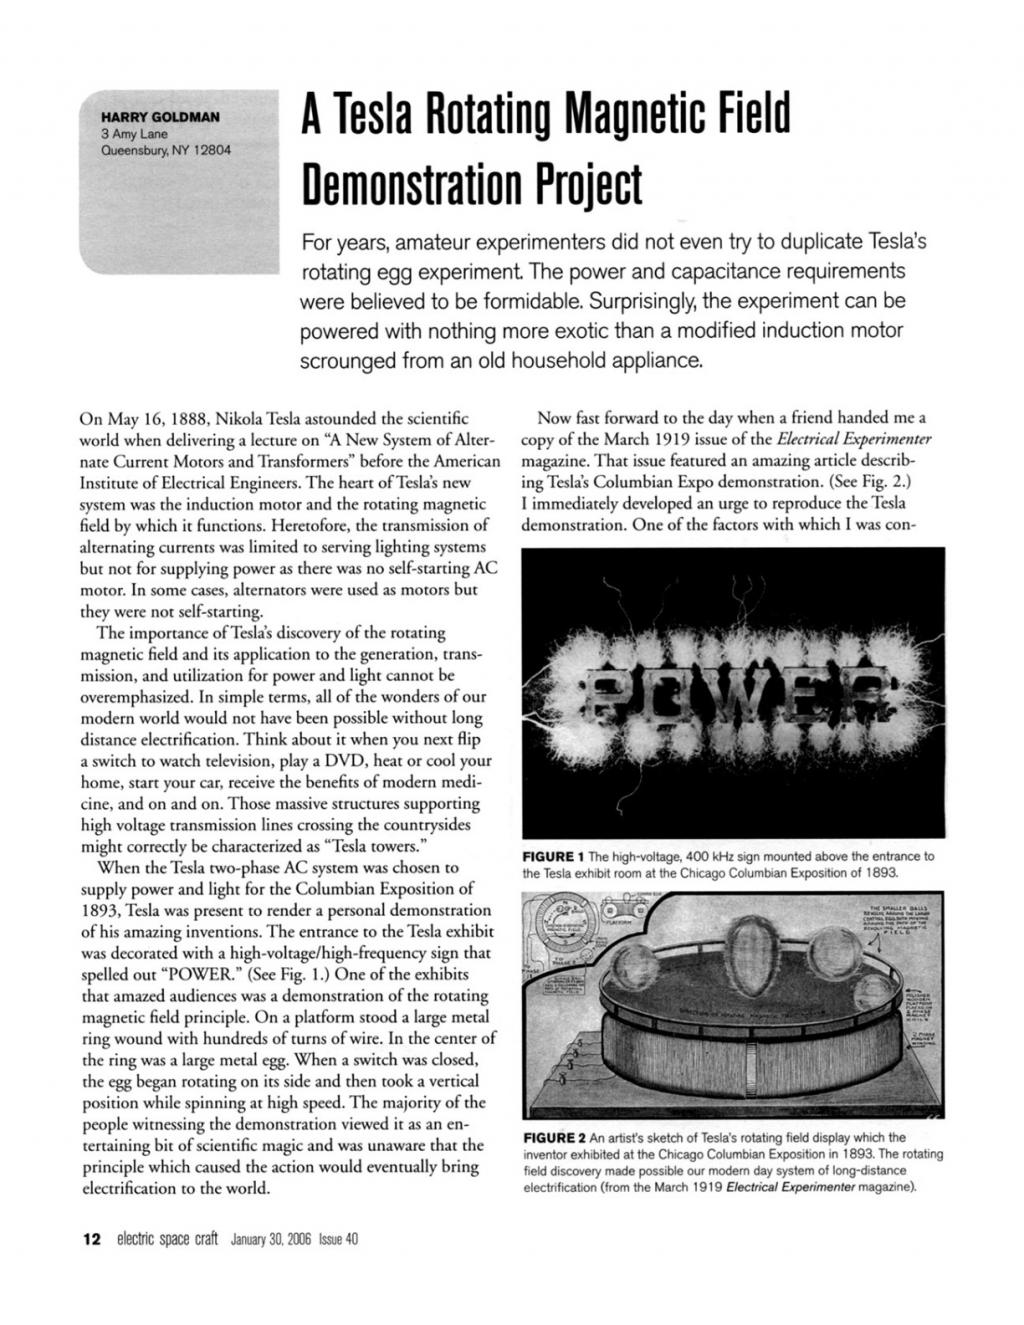 Preview of A Tesla Rotating Magnetic Field Demonstration Project plan